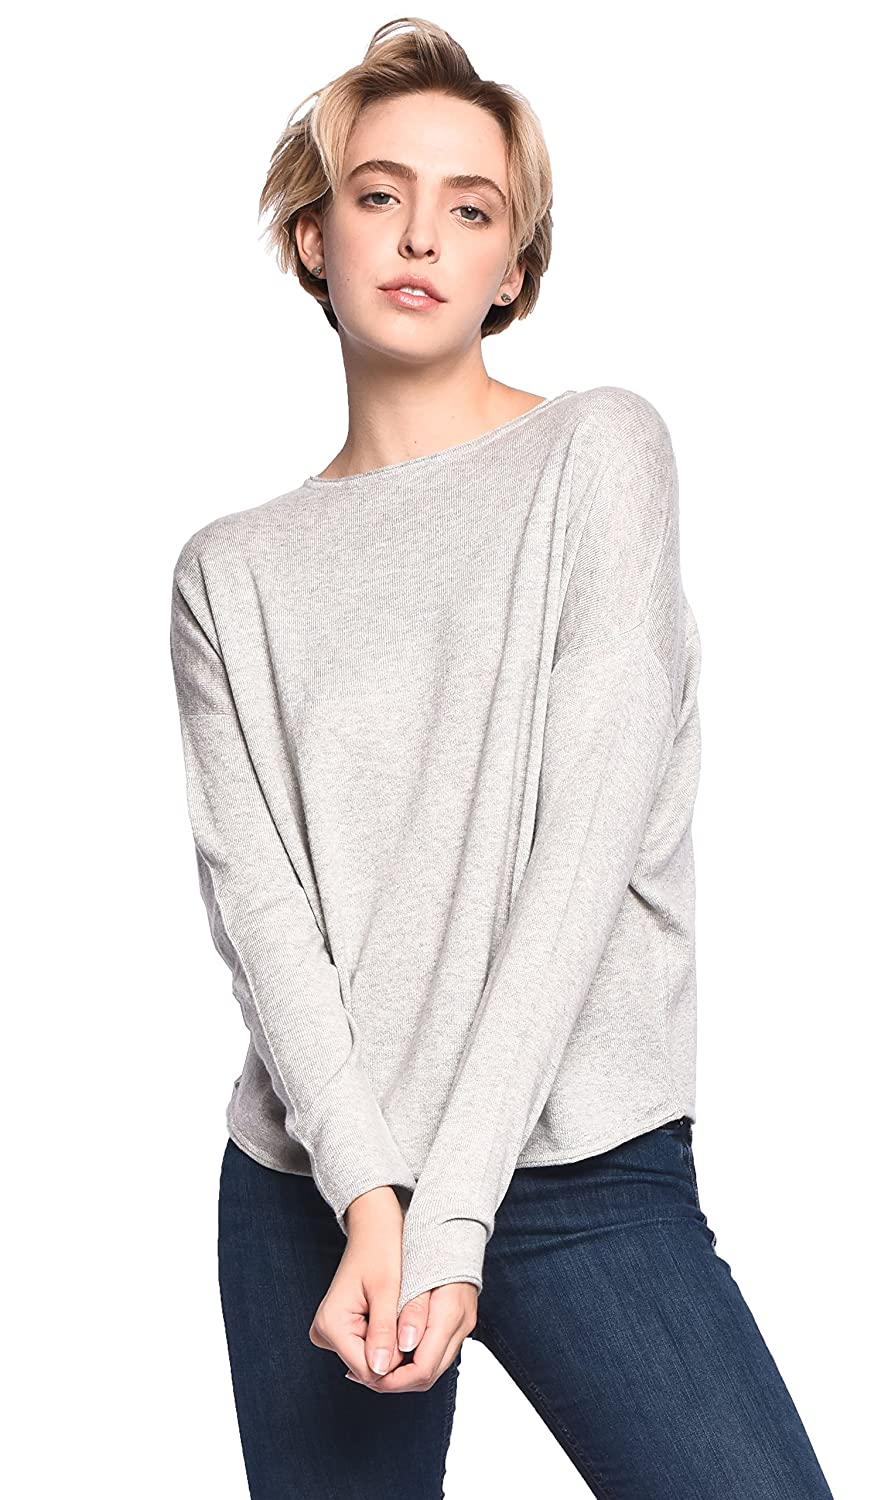 3VERY Womens Cashmere-Silk-Cotton Triangle-Shaped Round Neck